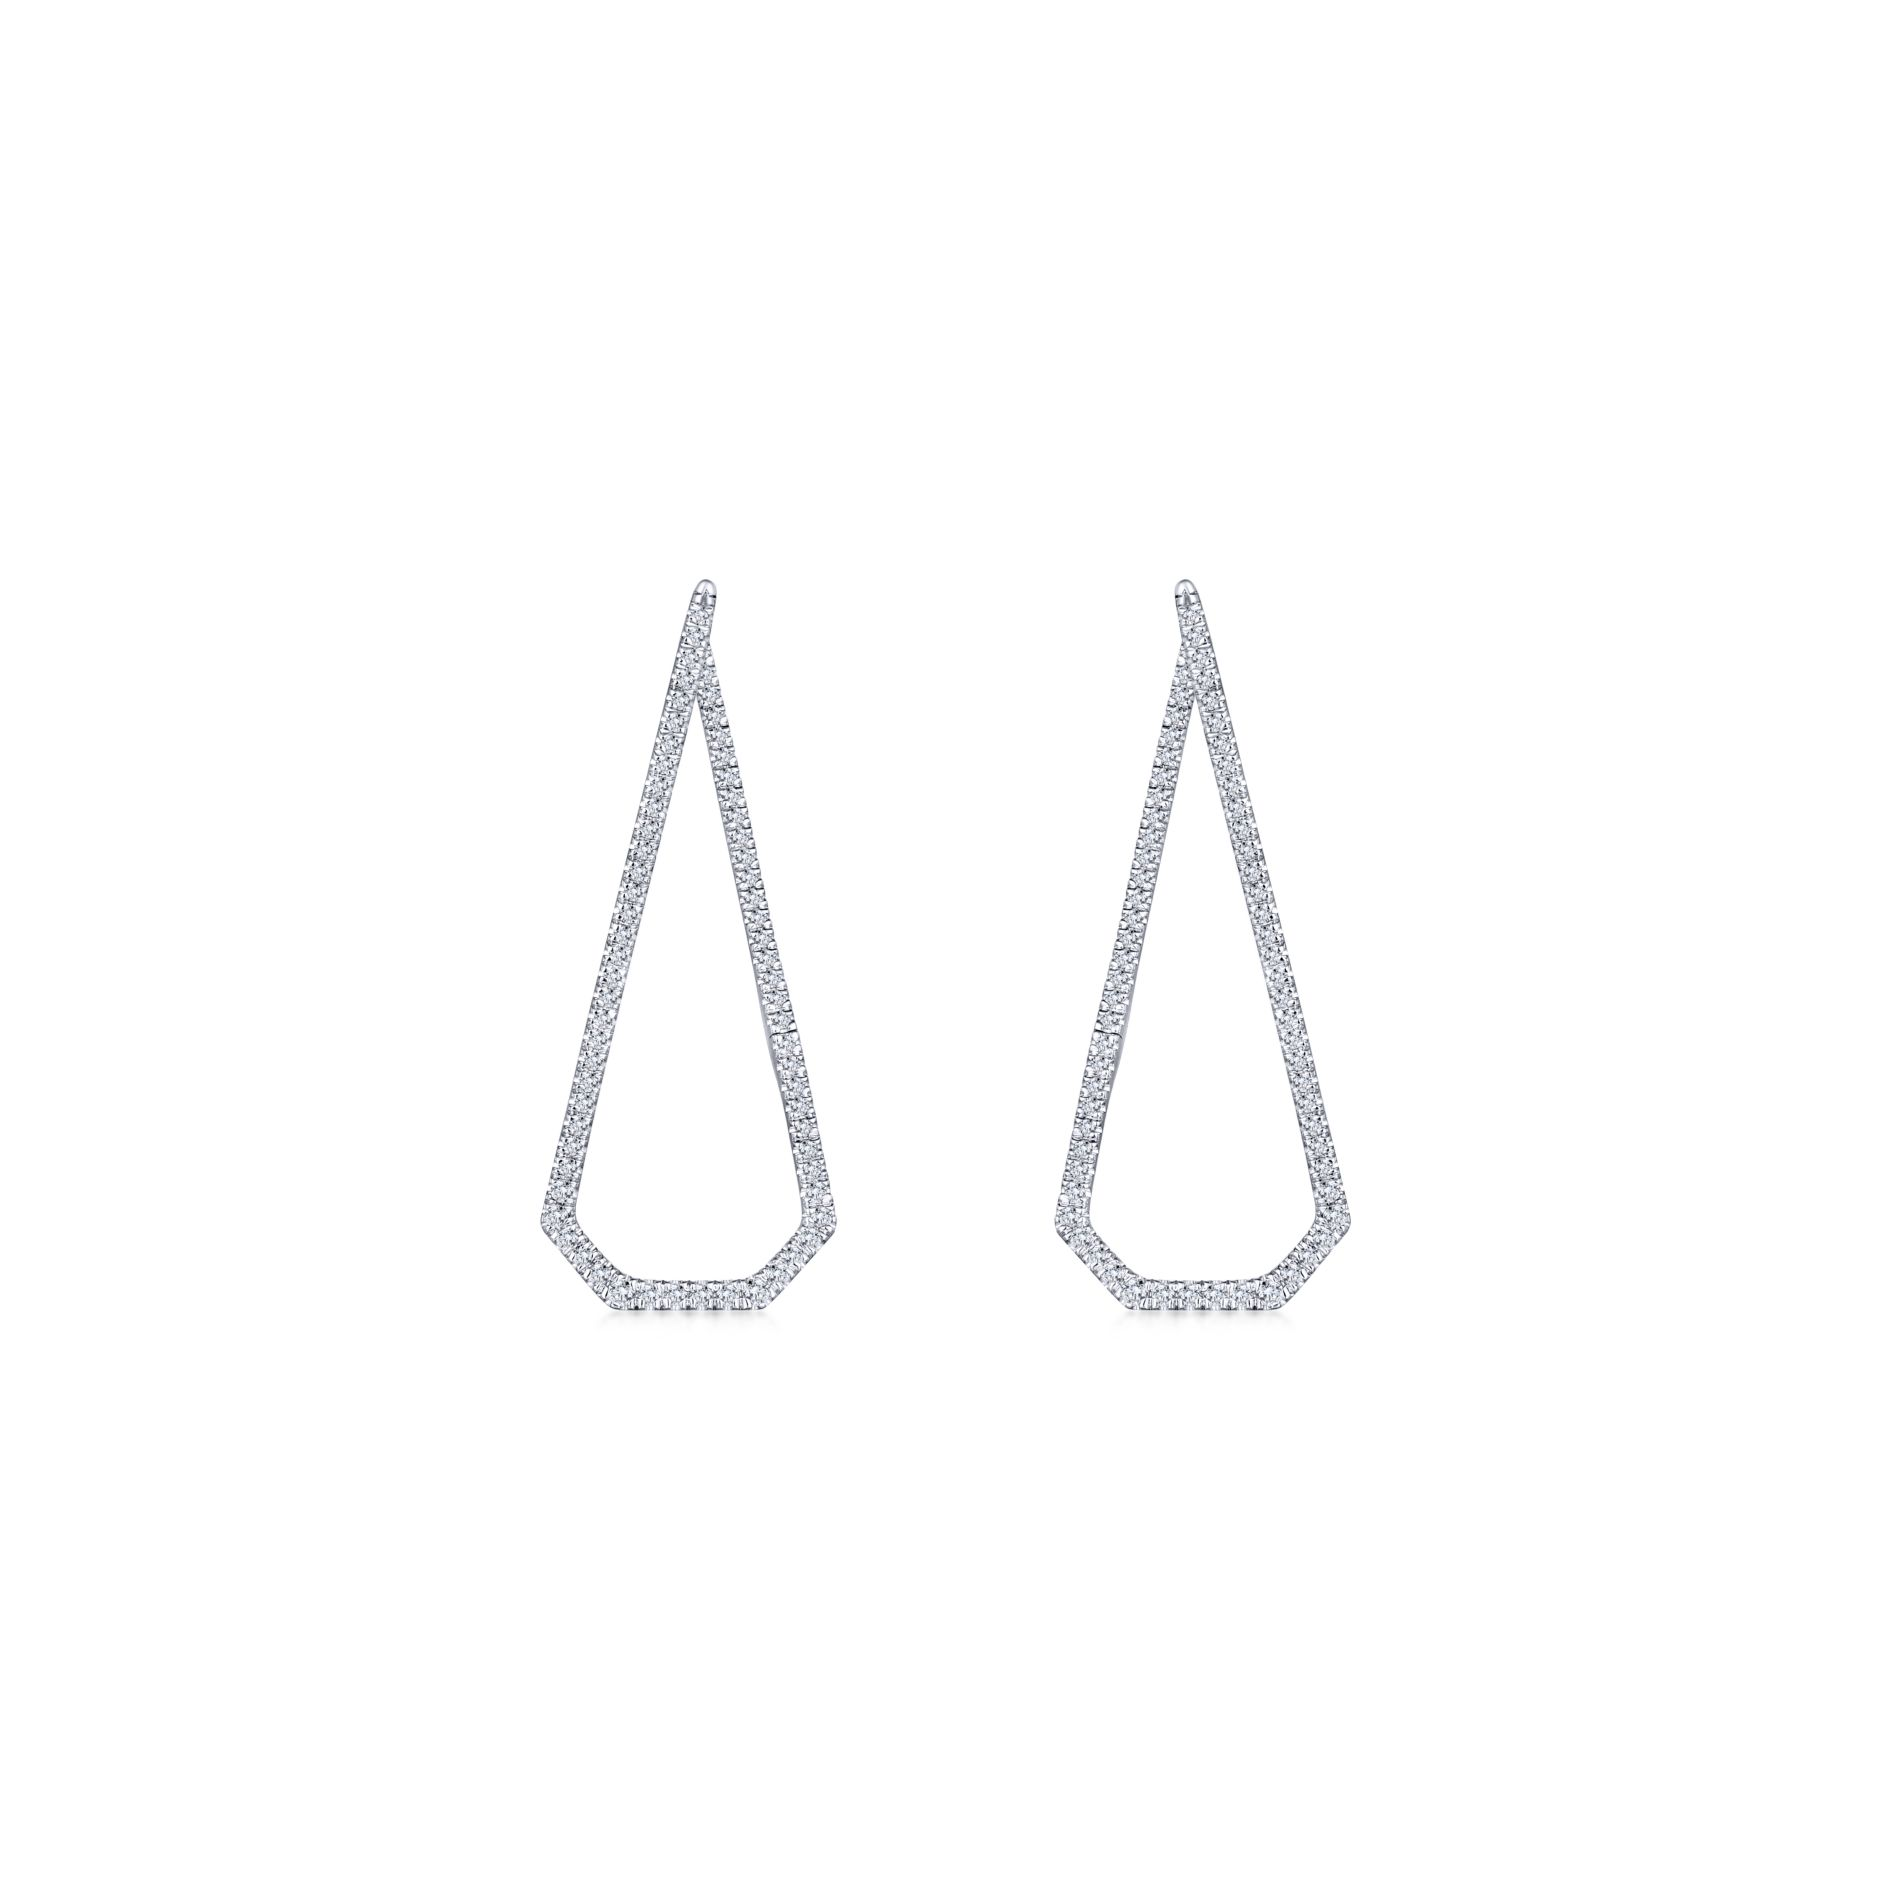 Earrings - INTRICARTE DIAMOND HOOP EARRINGS - image #3